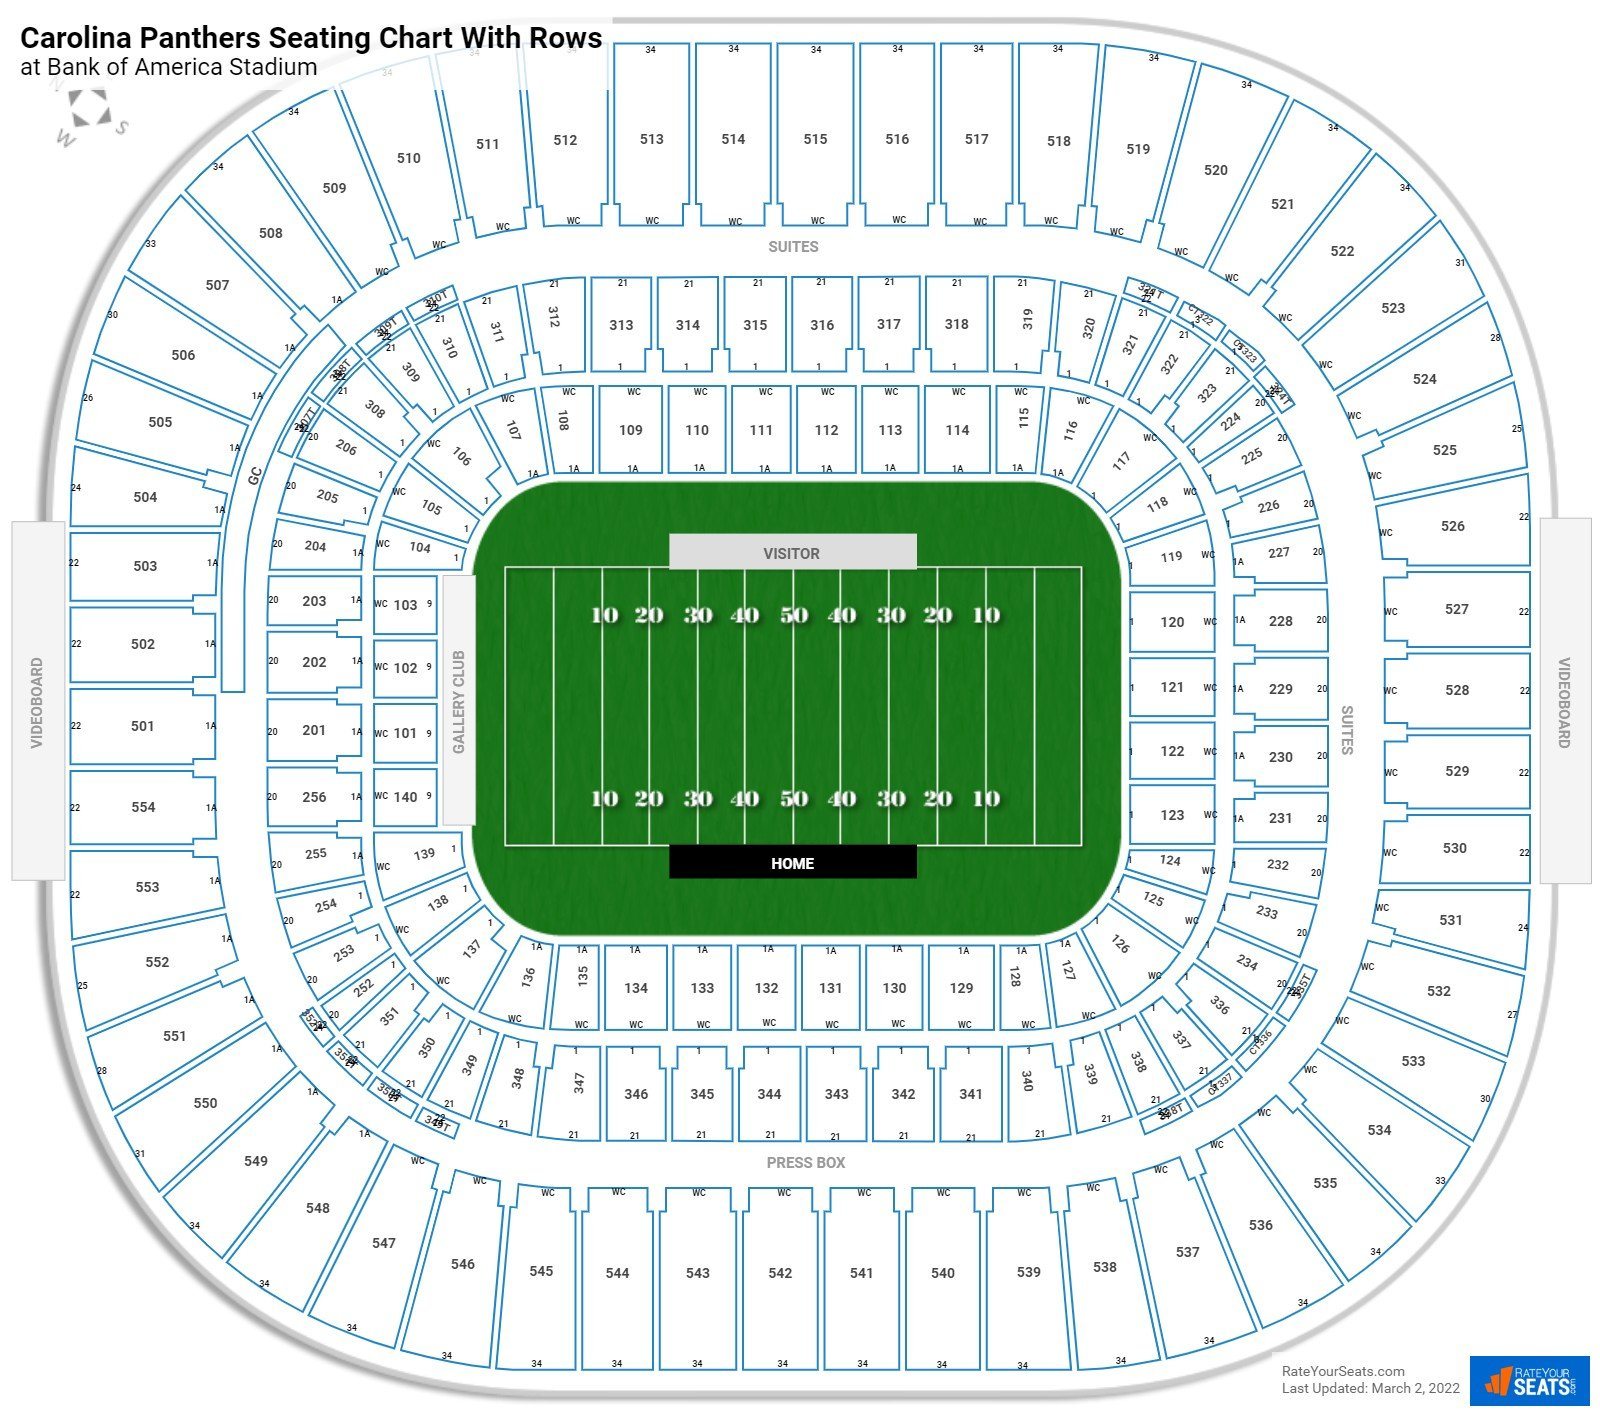 Bank of America Stadium seating chart with rows